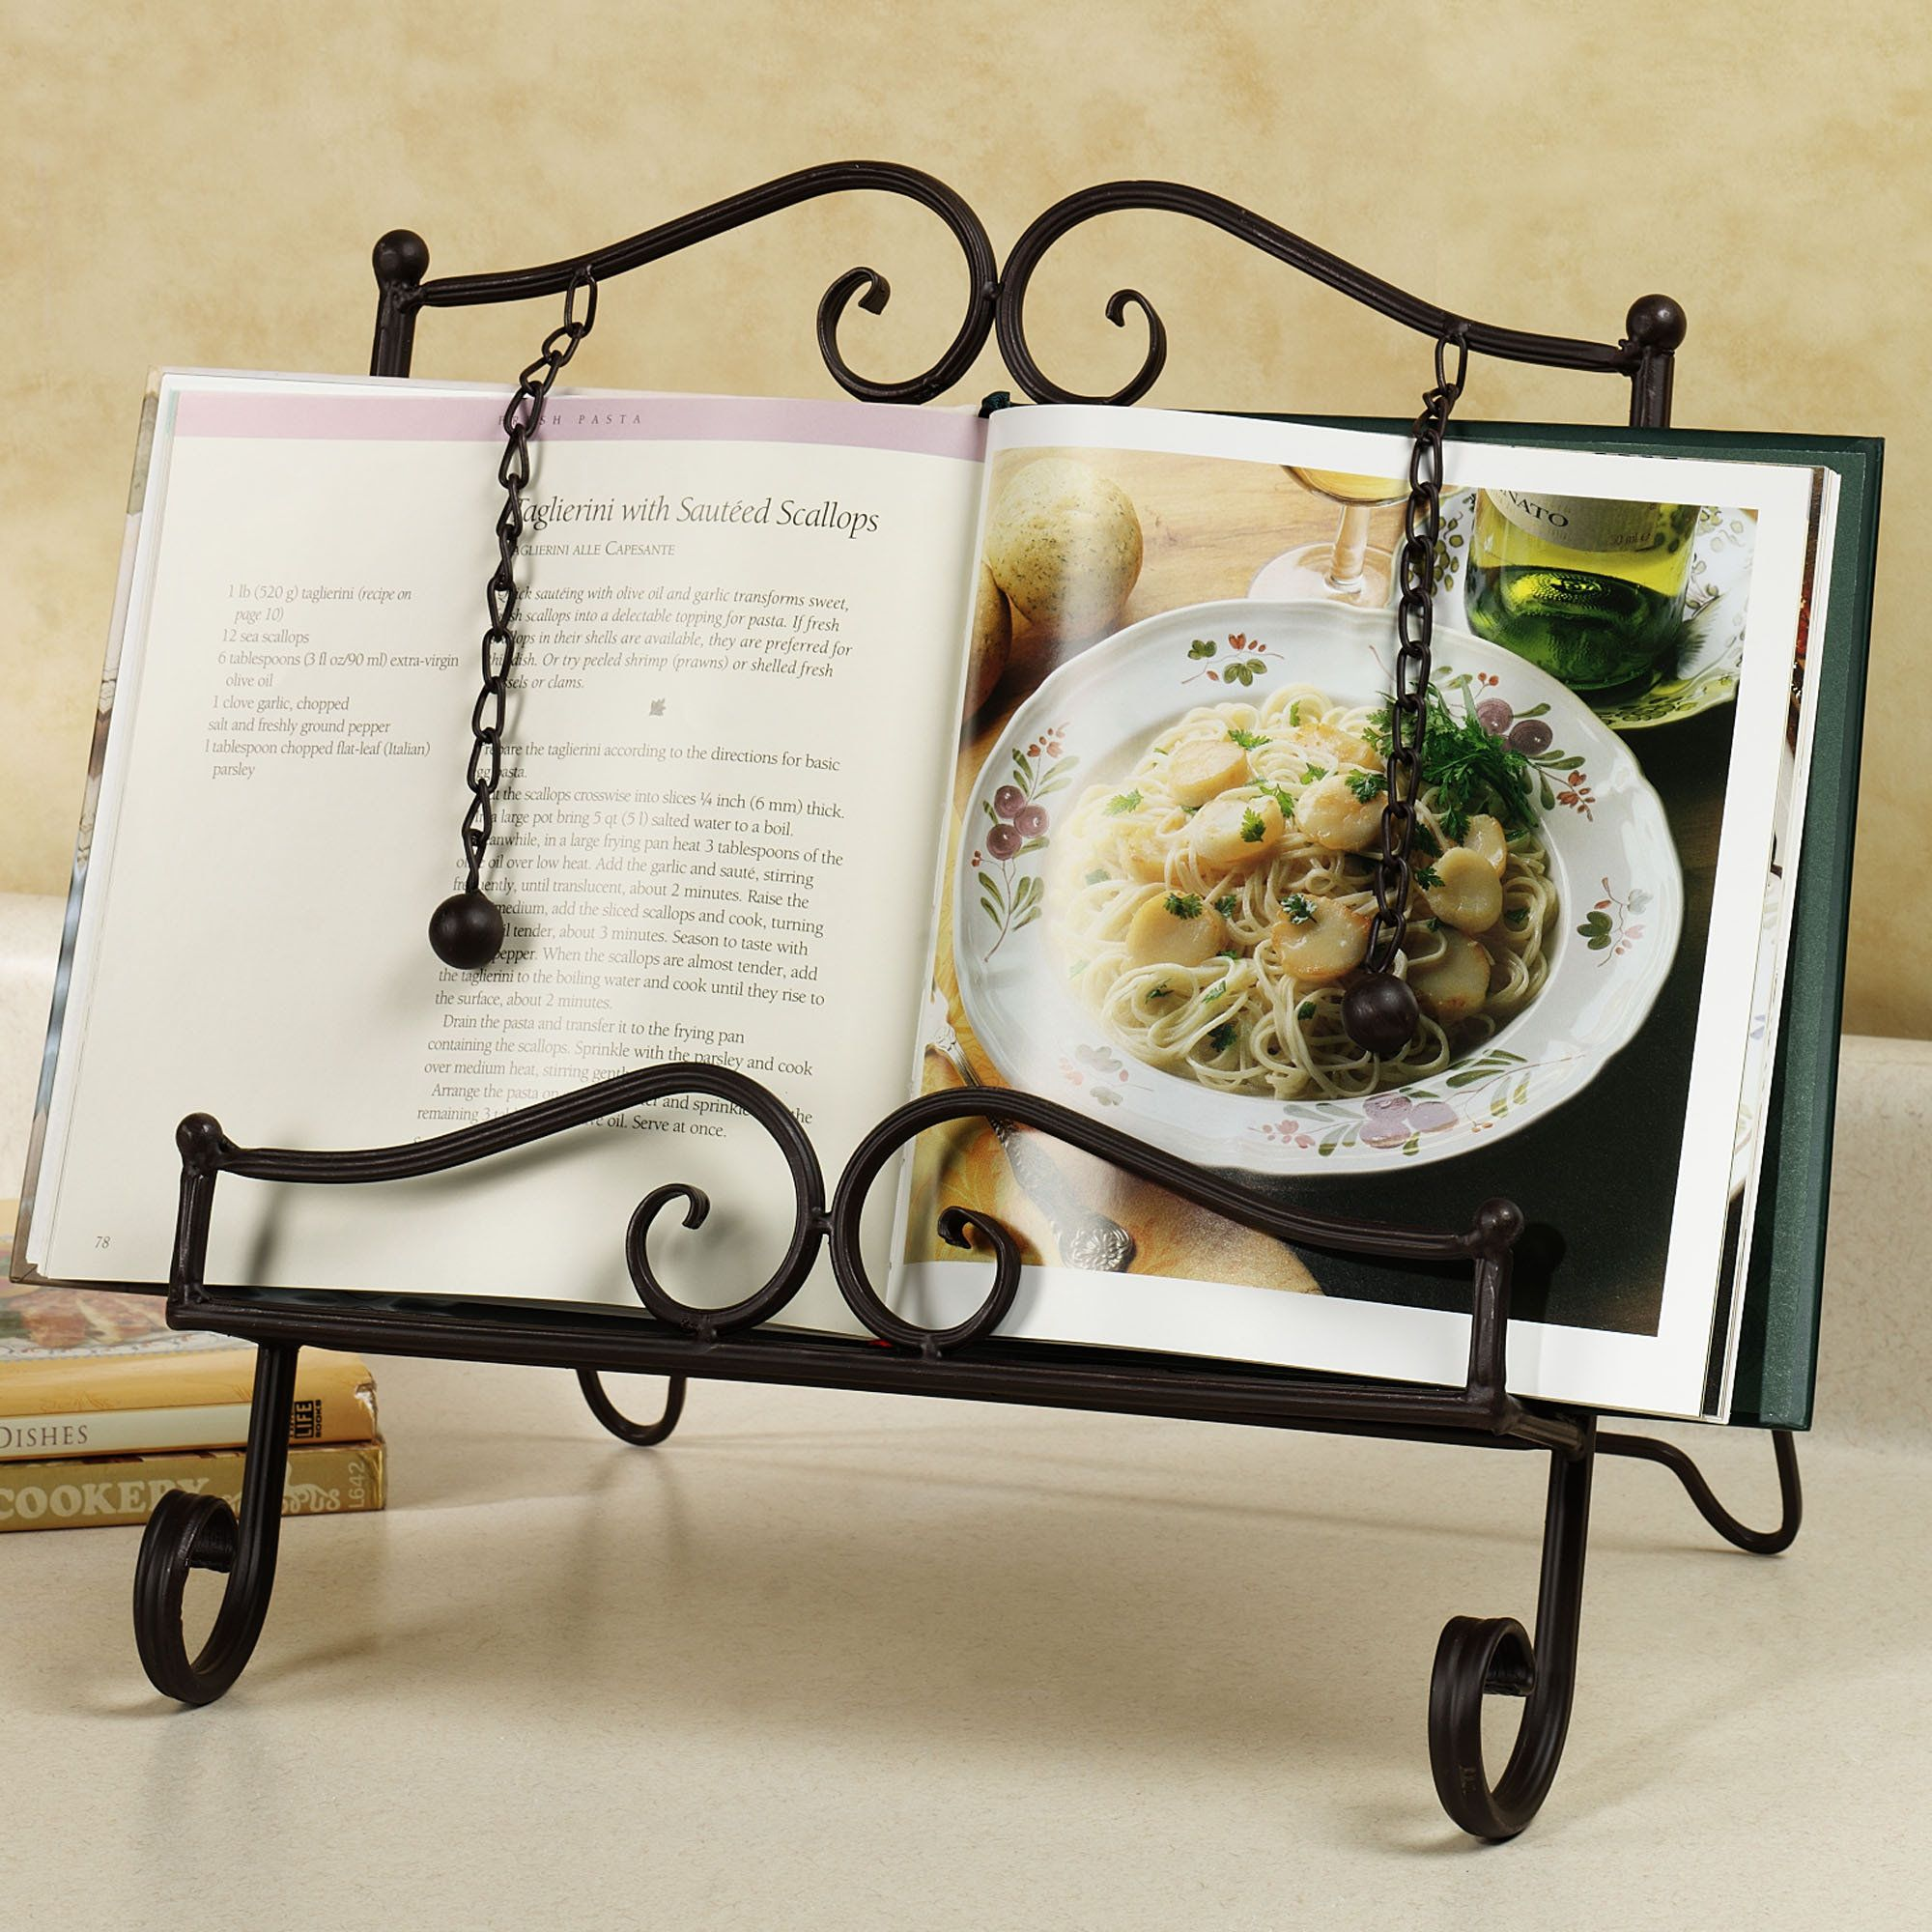 Book Holding Stand Townsend Cookbook Stand Iron Wrought Iron And Blacksmithing